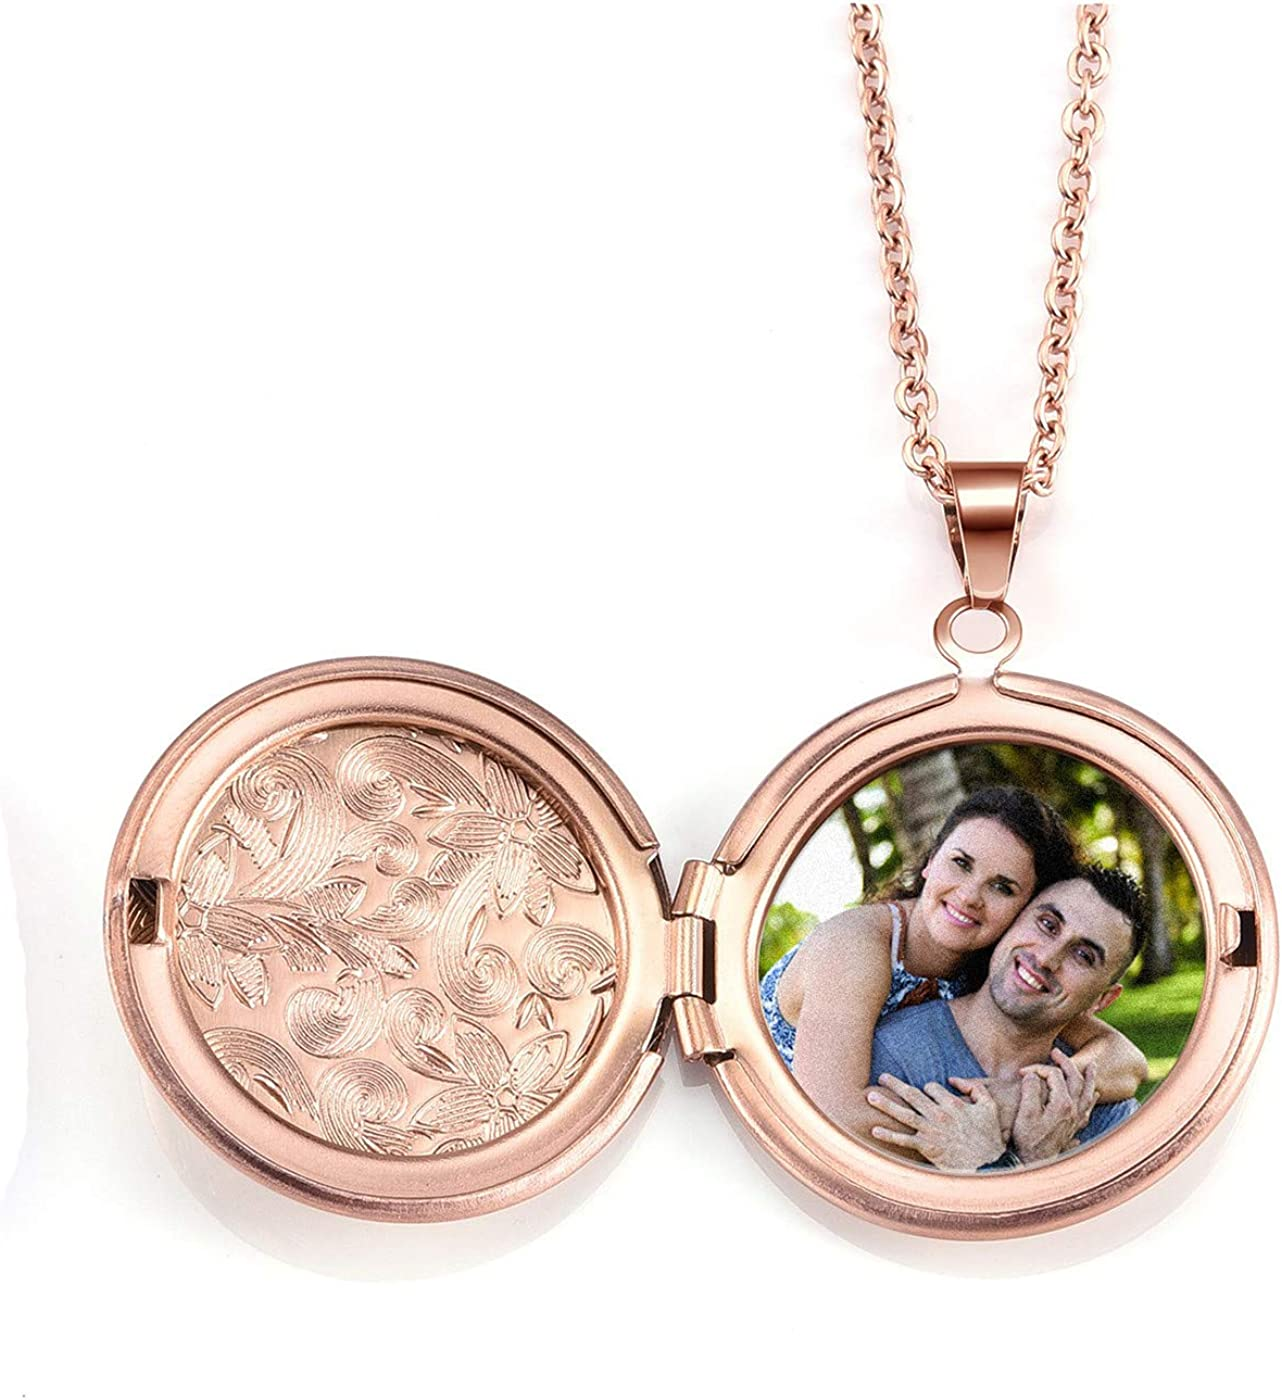 BOPREINA Personalized Photo Image Locket Pendant Round Locket Necklace That Holds Picture Custom Mothers Neclace with Any Memory Photo Locket Necklace Gifts for Mom